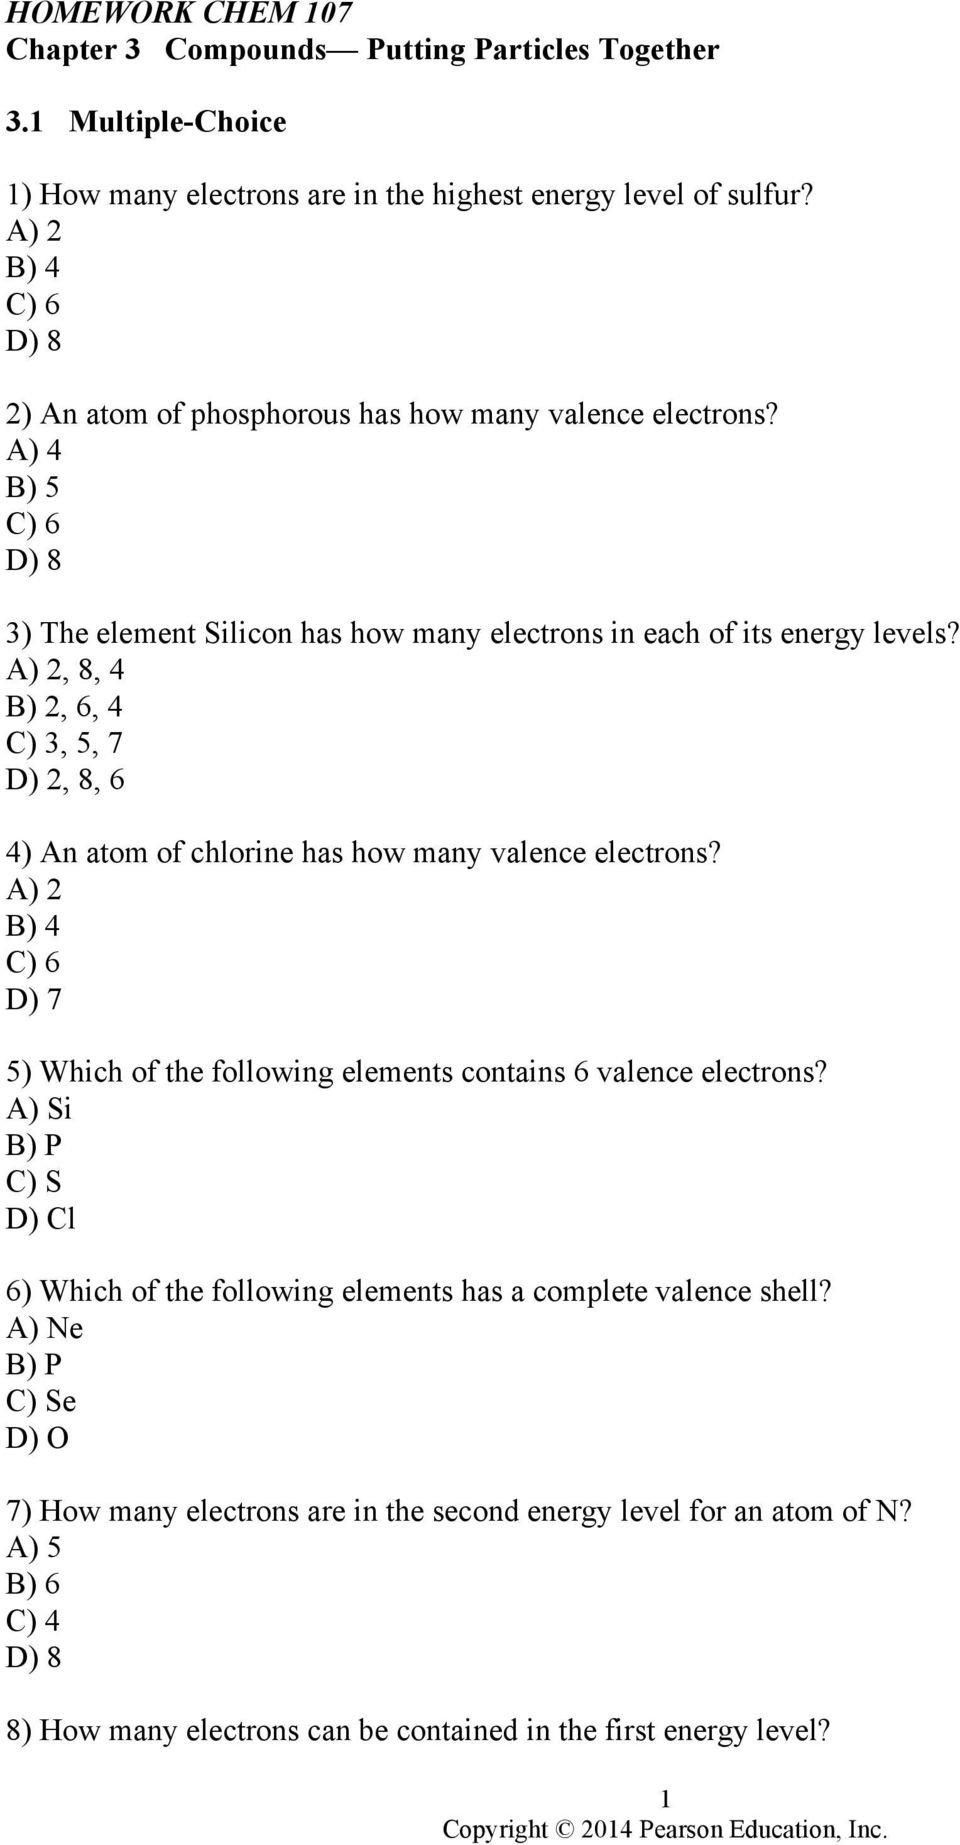 A) 2, 8, 4 B) 2, 6, 4 C) 3, 5, 7 D) 2, 8, 6 4) An atom of chlorine has how many valence electrons? A) 2 B) 4 C) 6 D) 7 5) Which of the following elements contains 6 valence electrons?